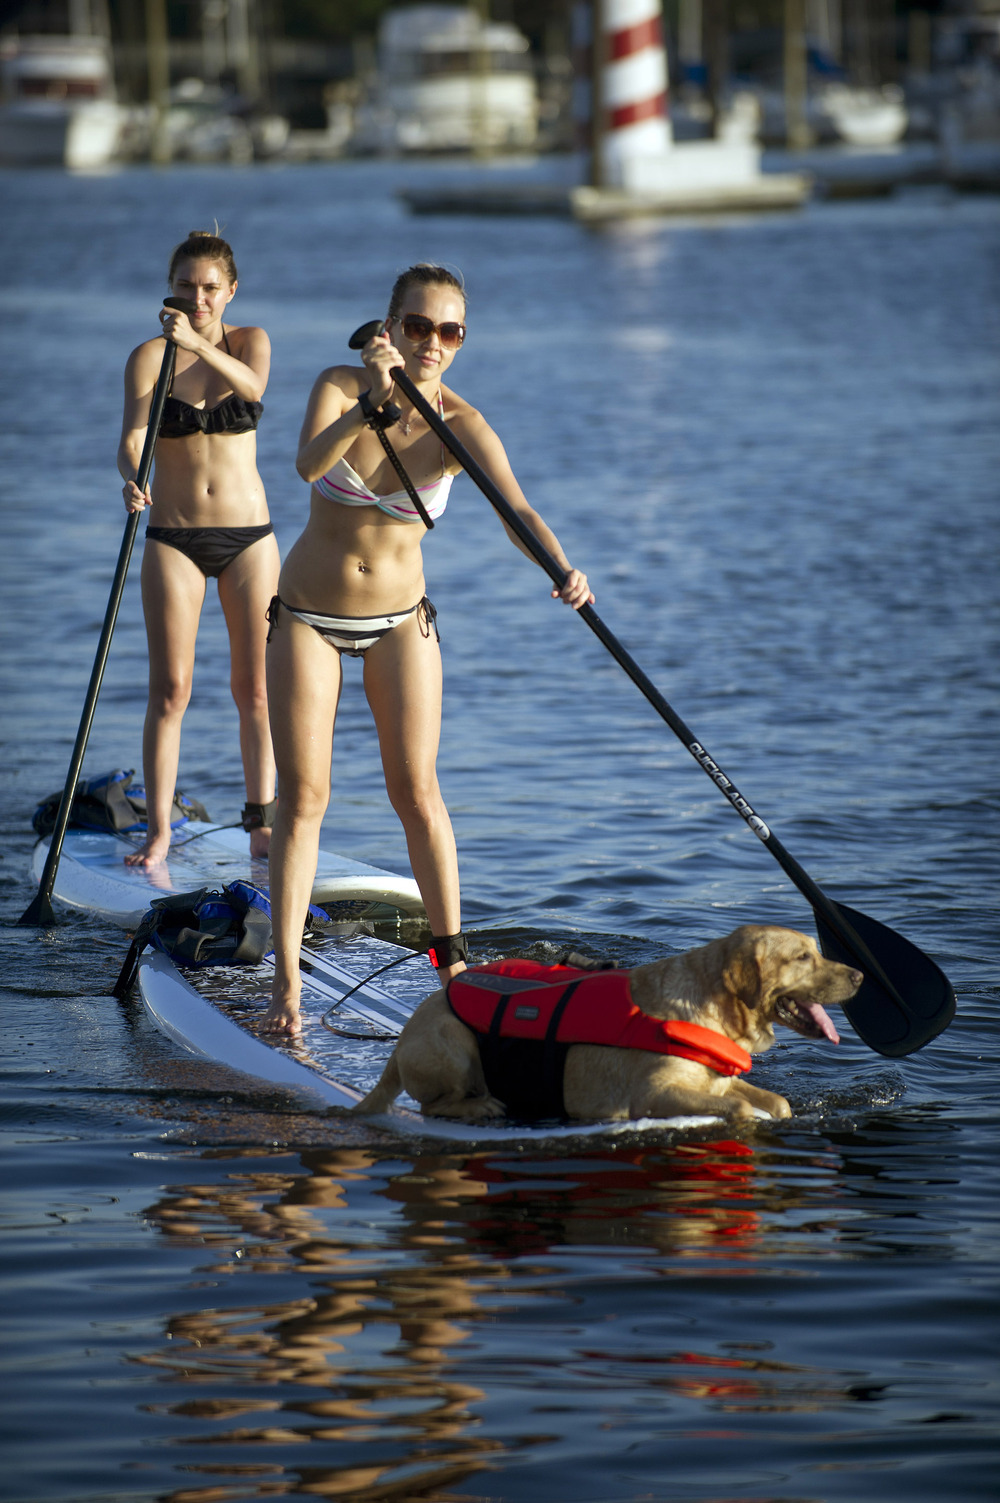 Natalie Titova Campos, her dog, Kenbol, and Alena Matveeva use paddleboards rented from Young Mariners at Harbor Point on Friday, July 5, 2013.